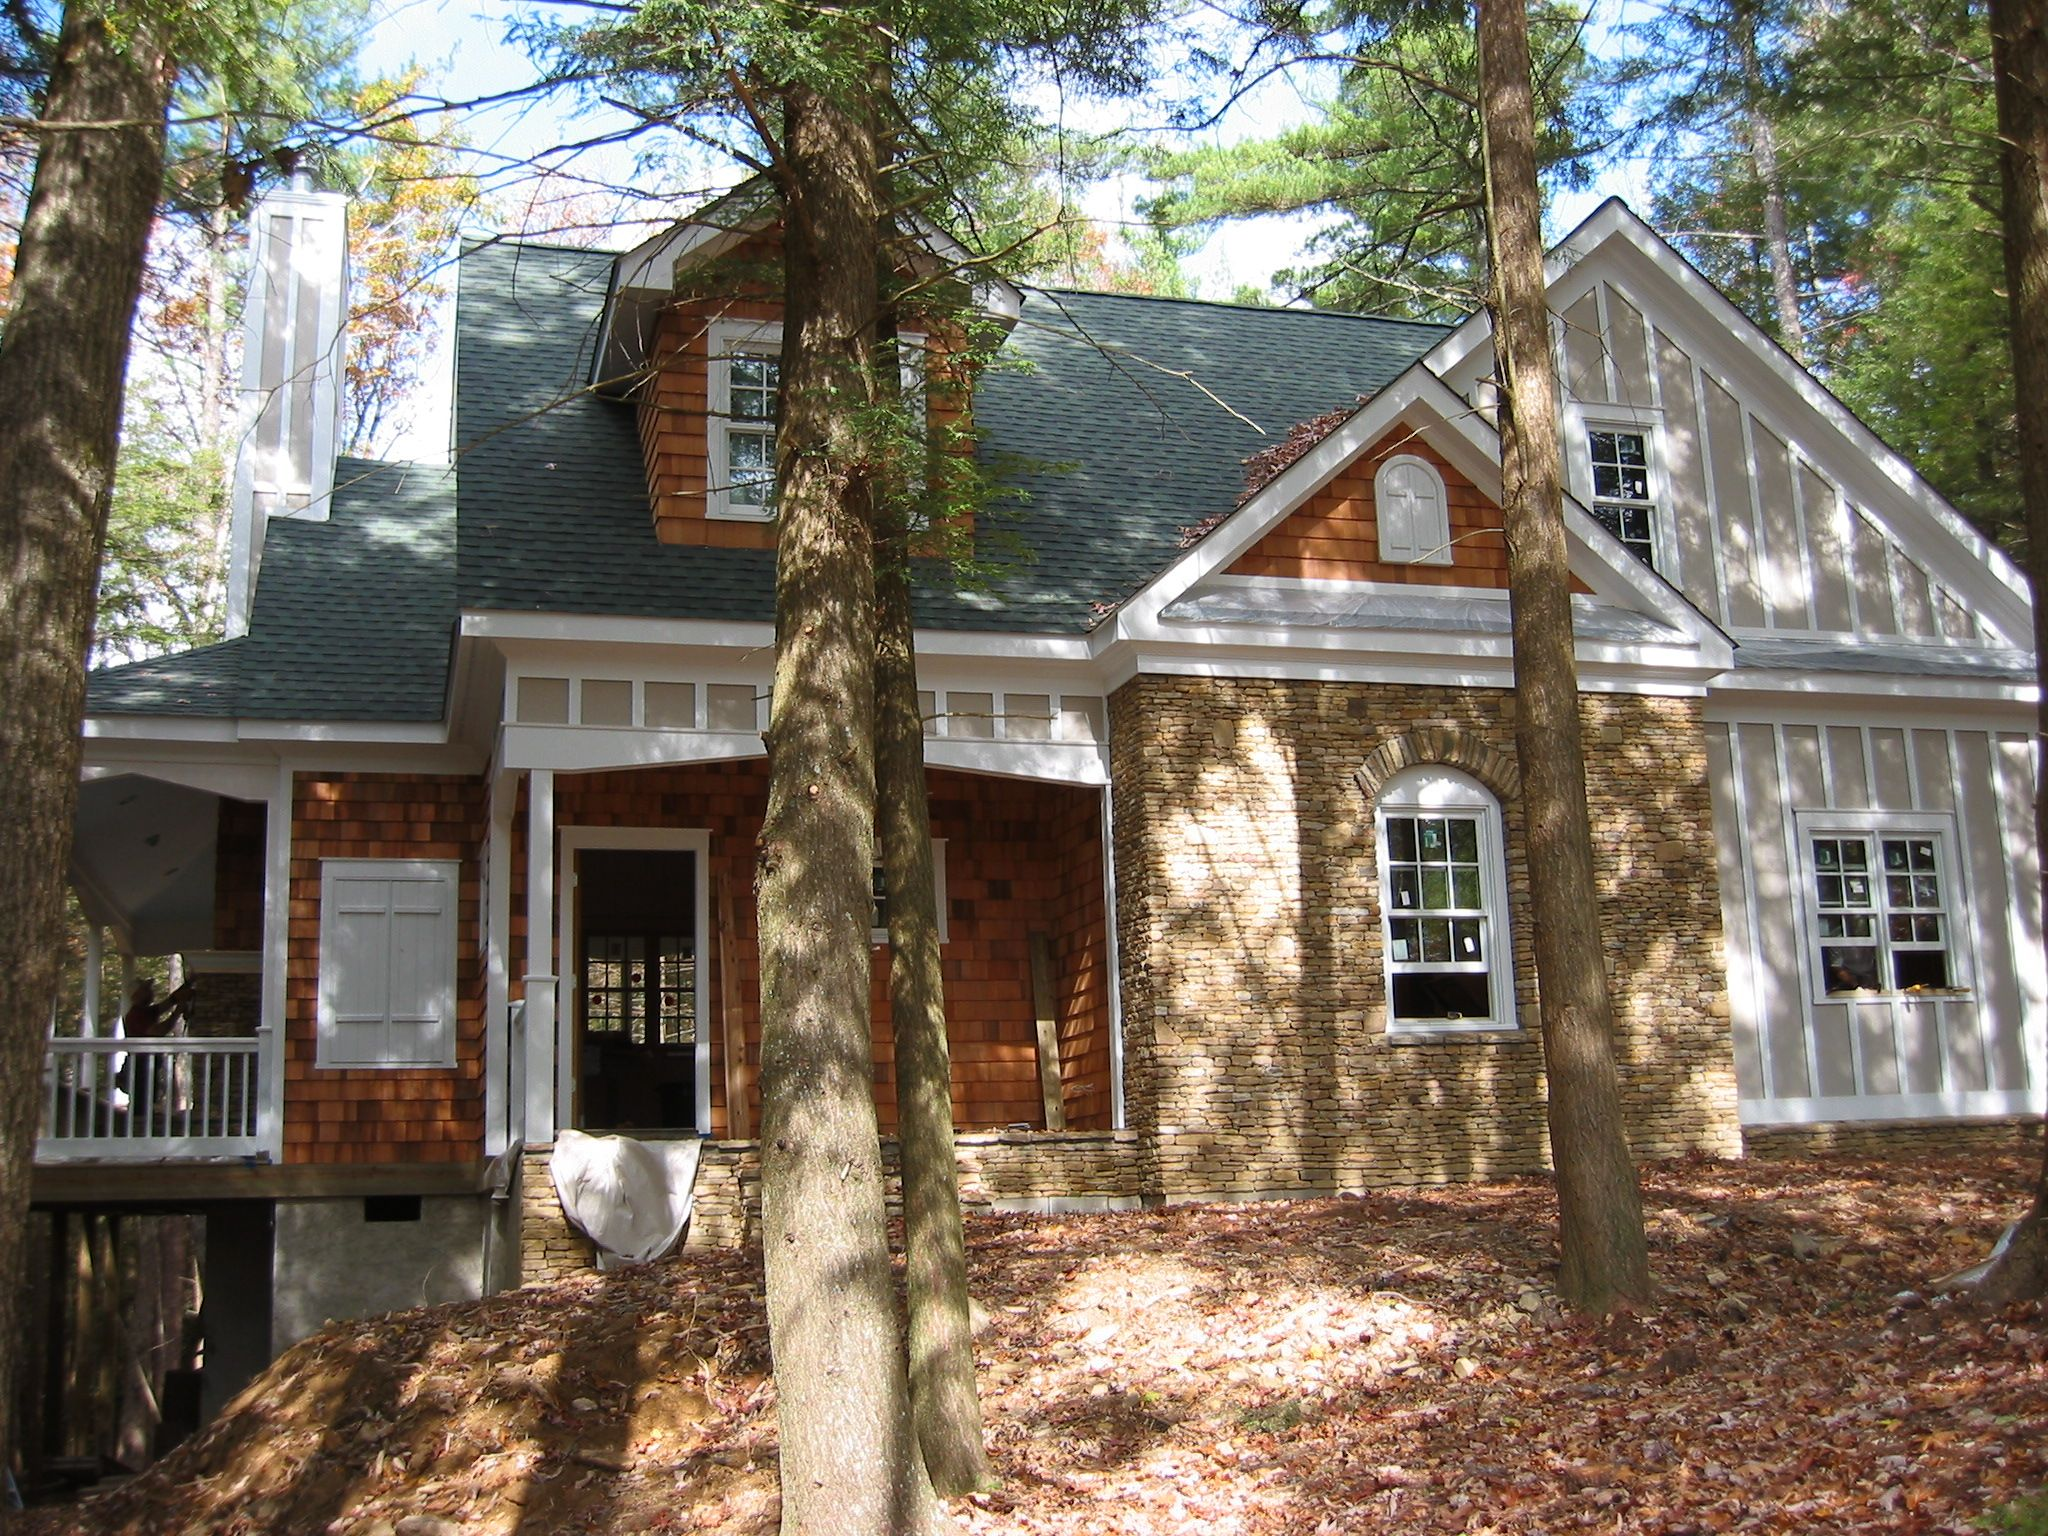 1000 images about House plans on Pinterest Southern house plans